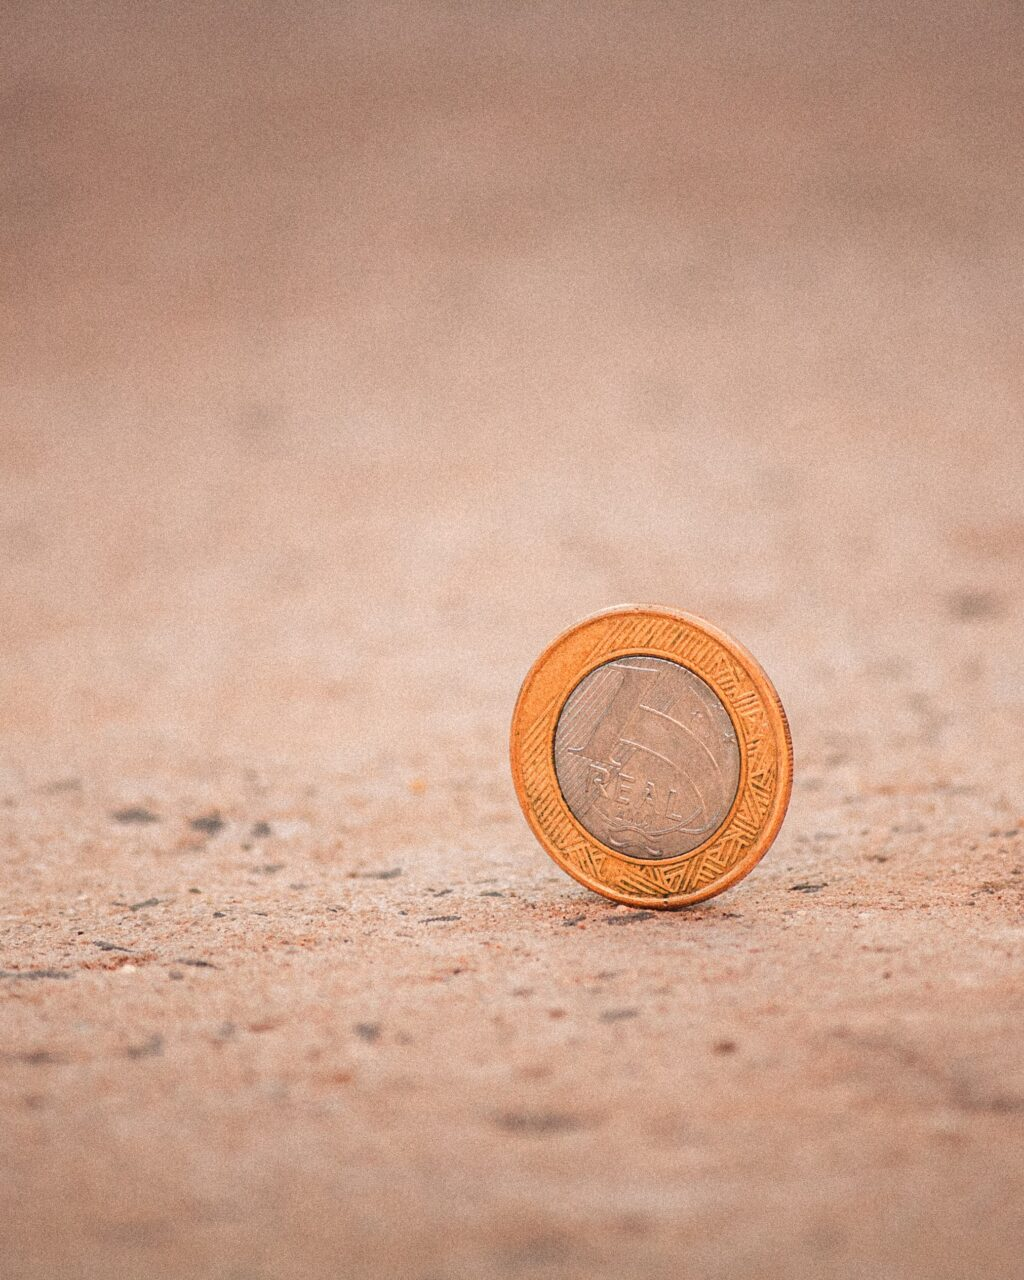 Coin on the ground